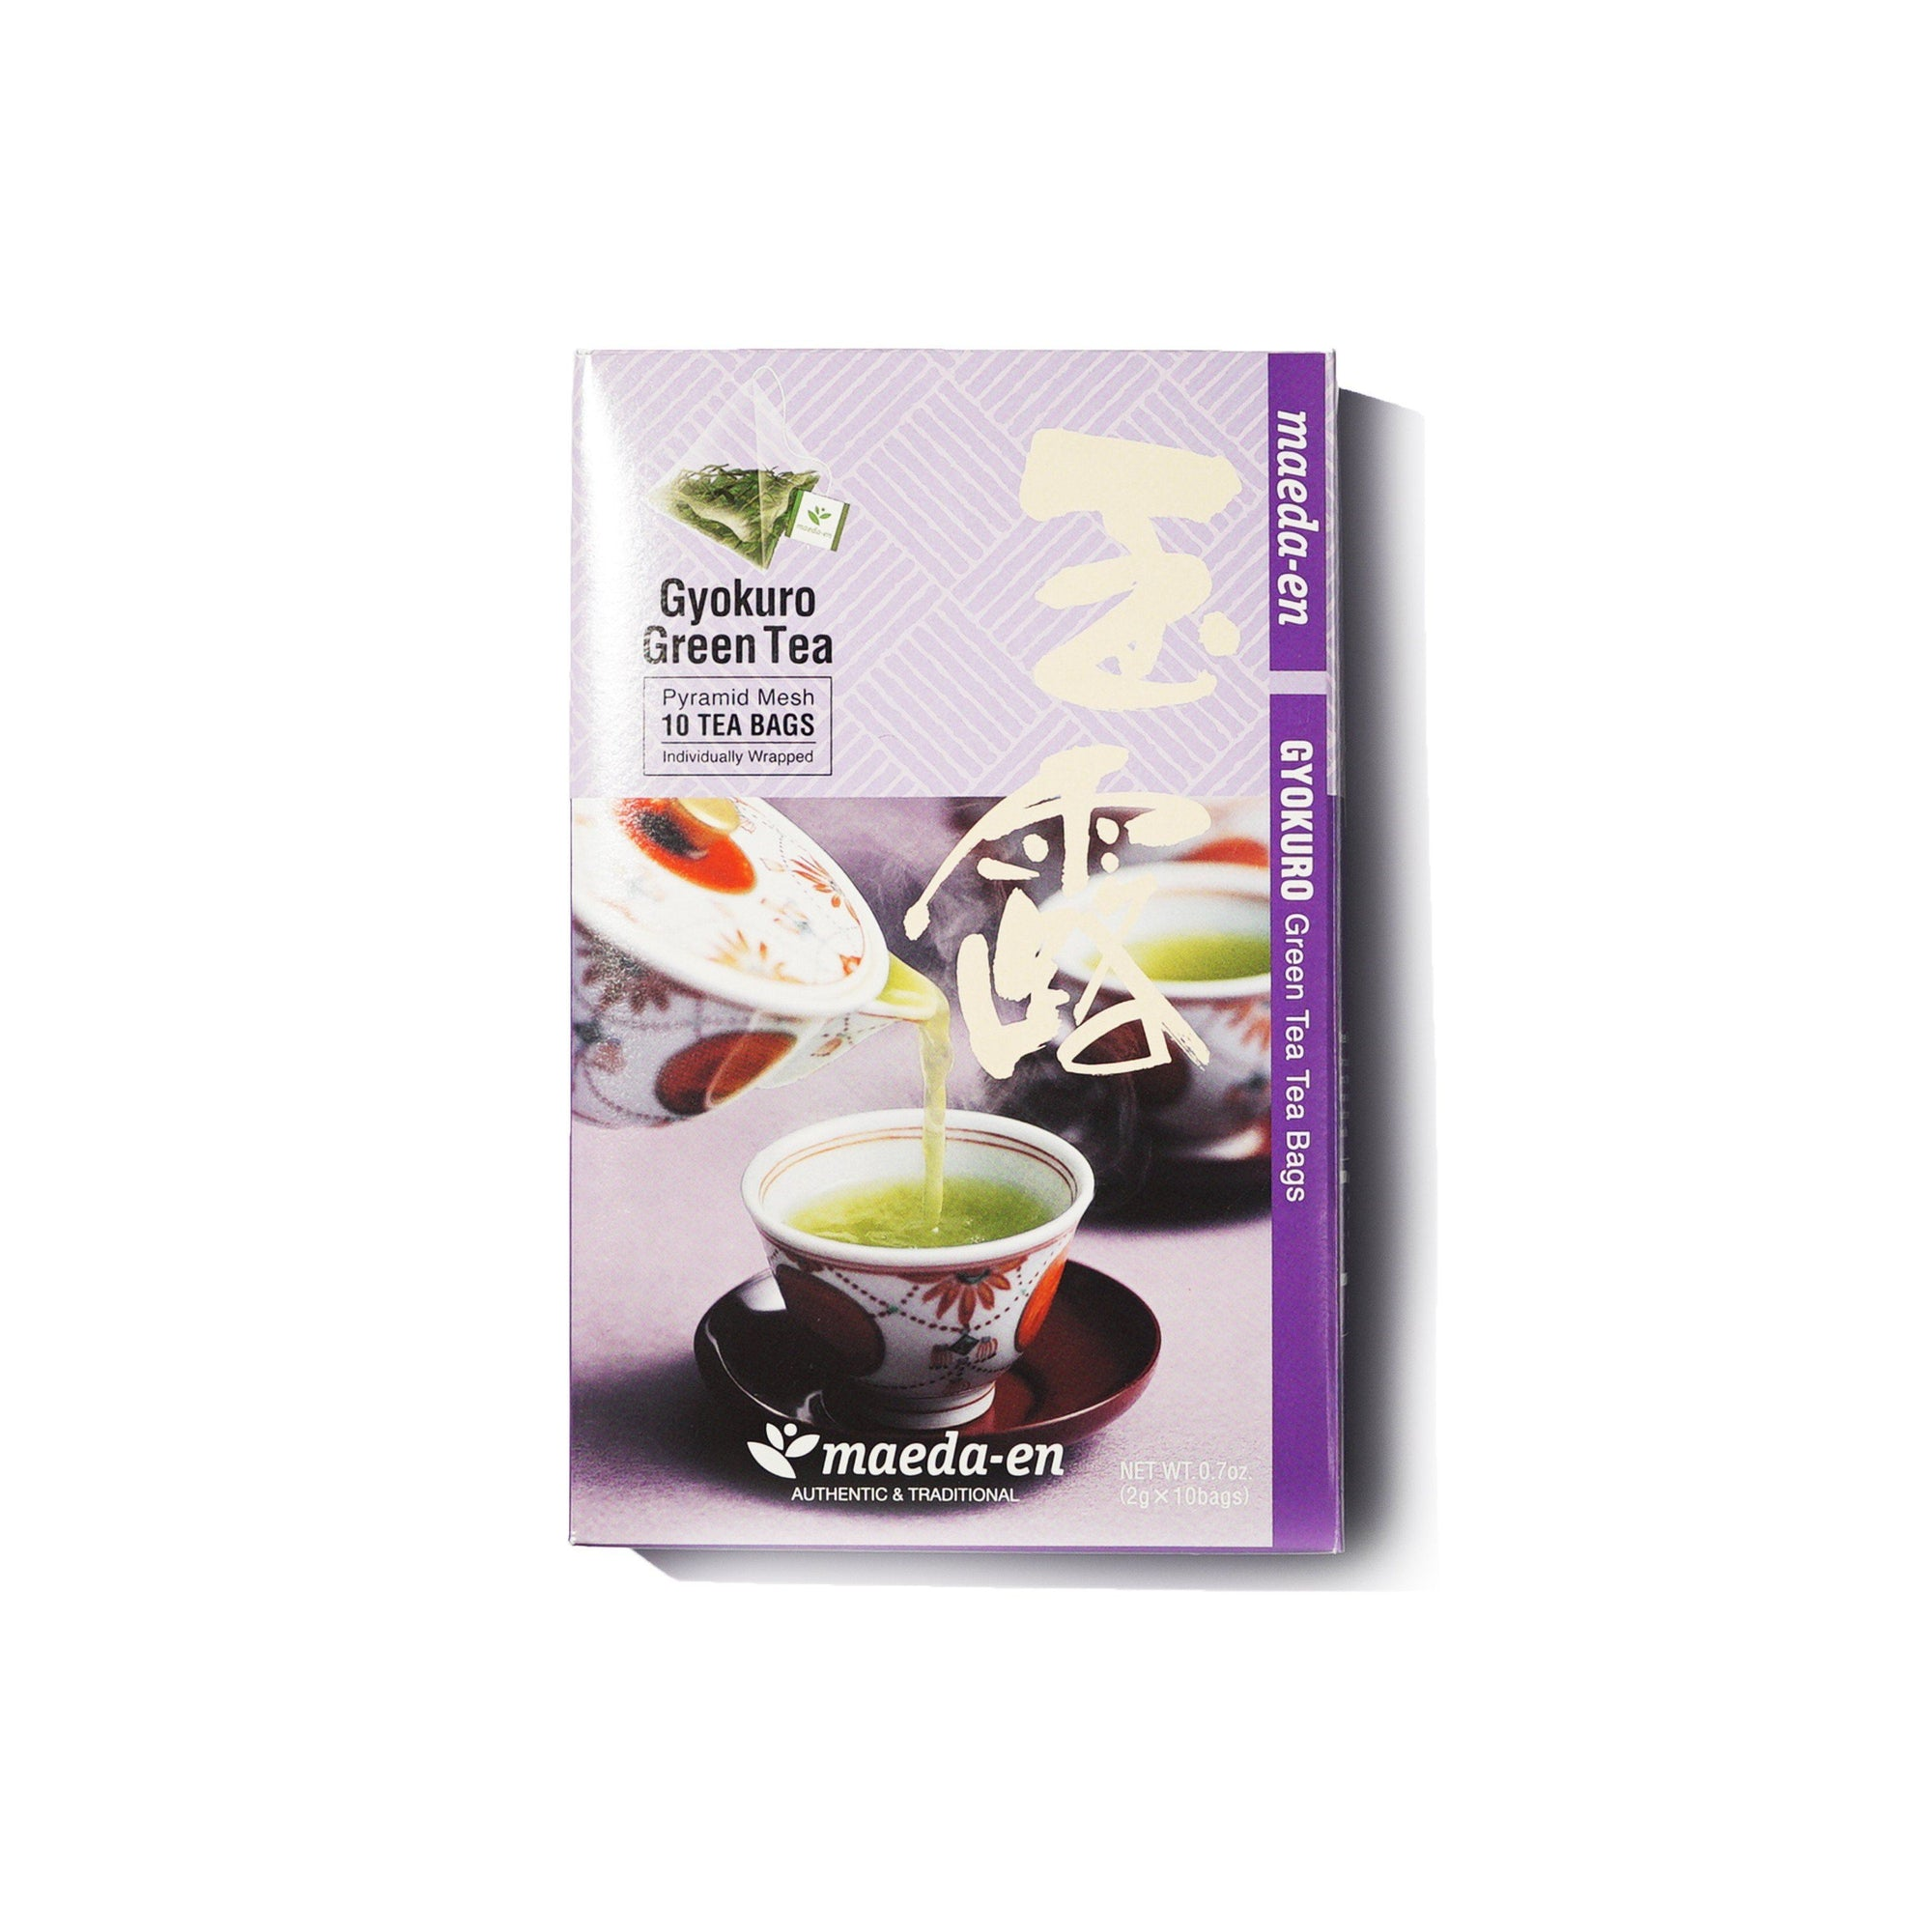 Gyokuro Green Tea 玉露